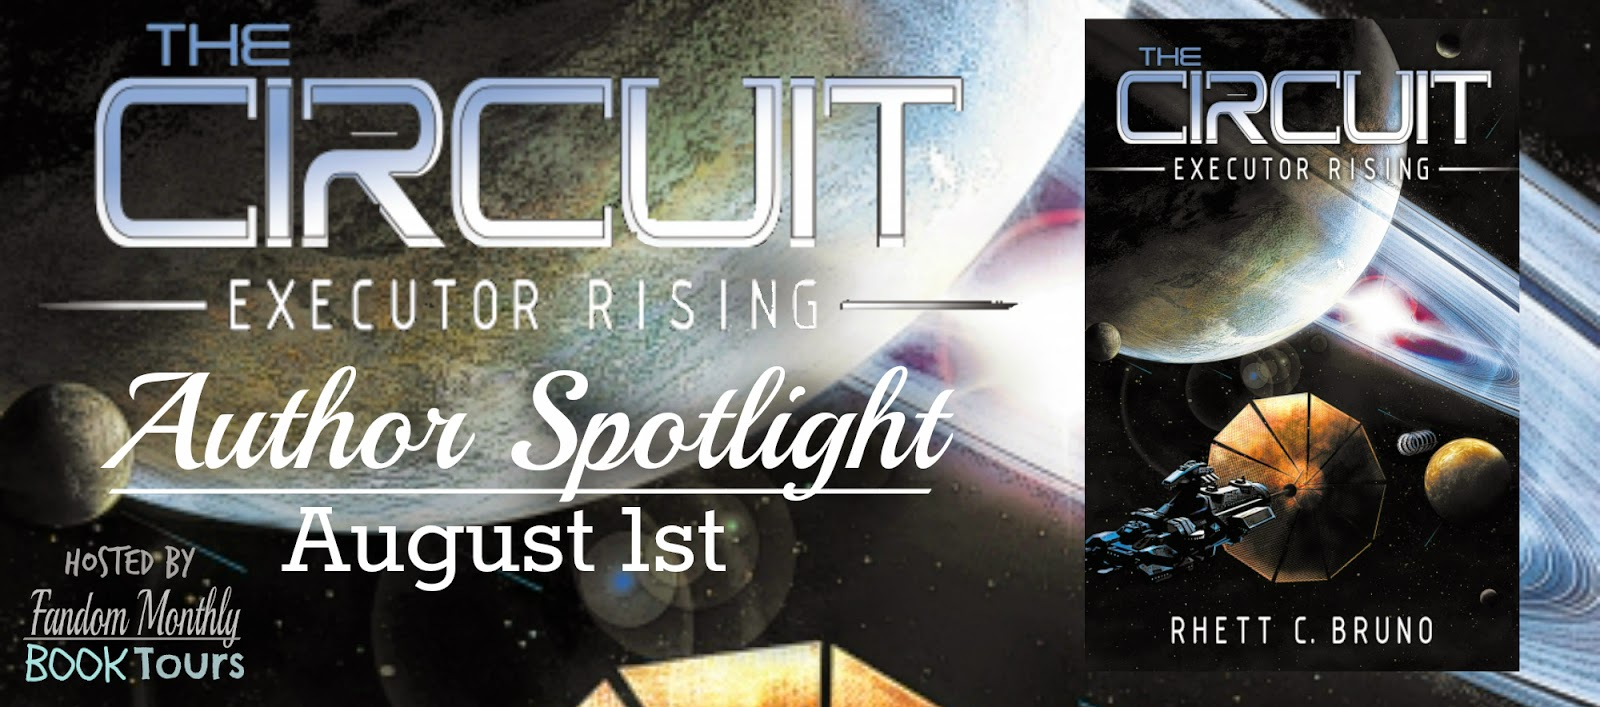 The Circuit: Executor Rising Author Spotlight with Excerpt and Giveaway